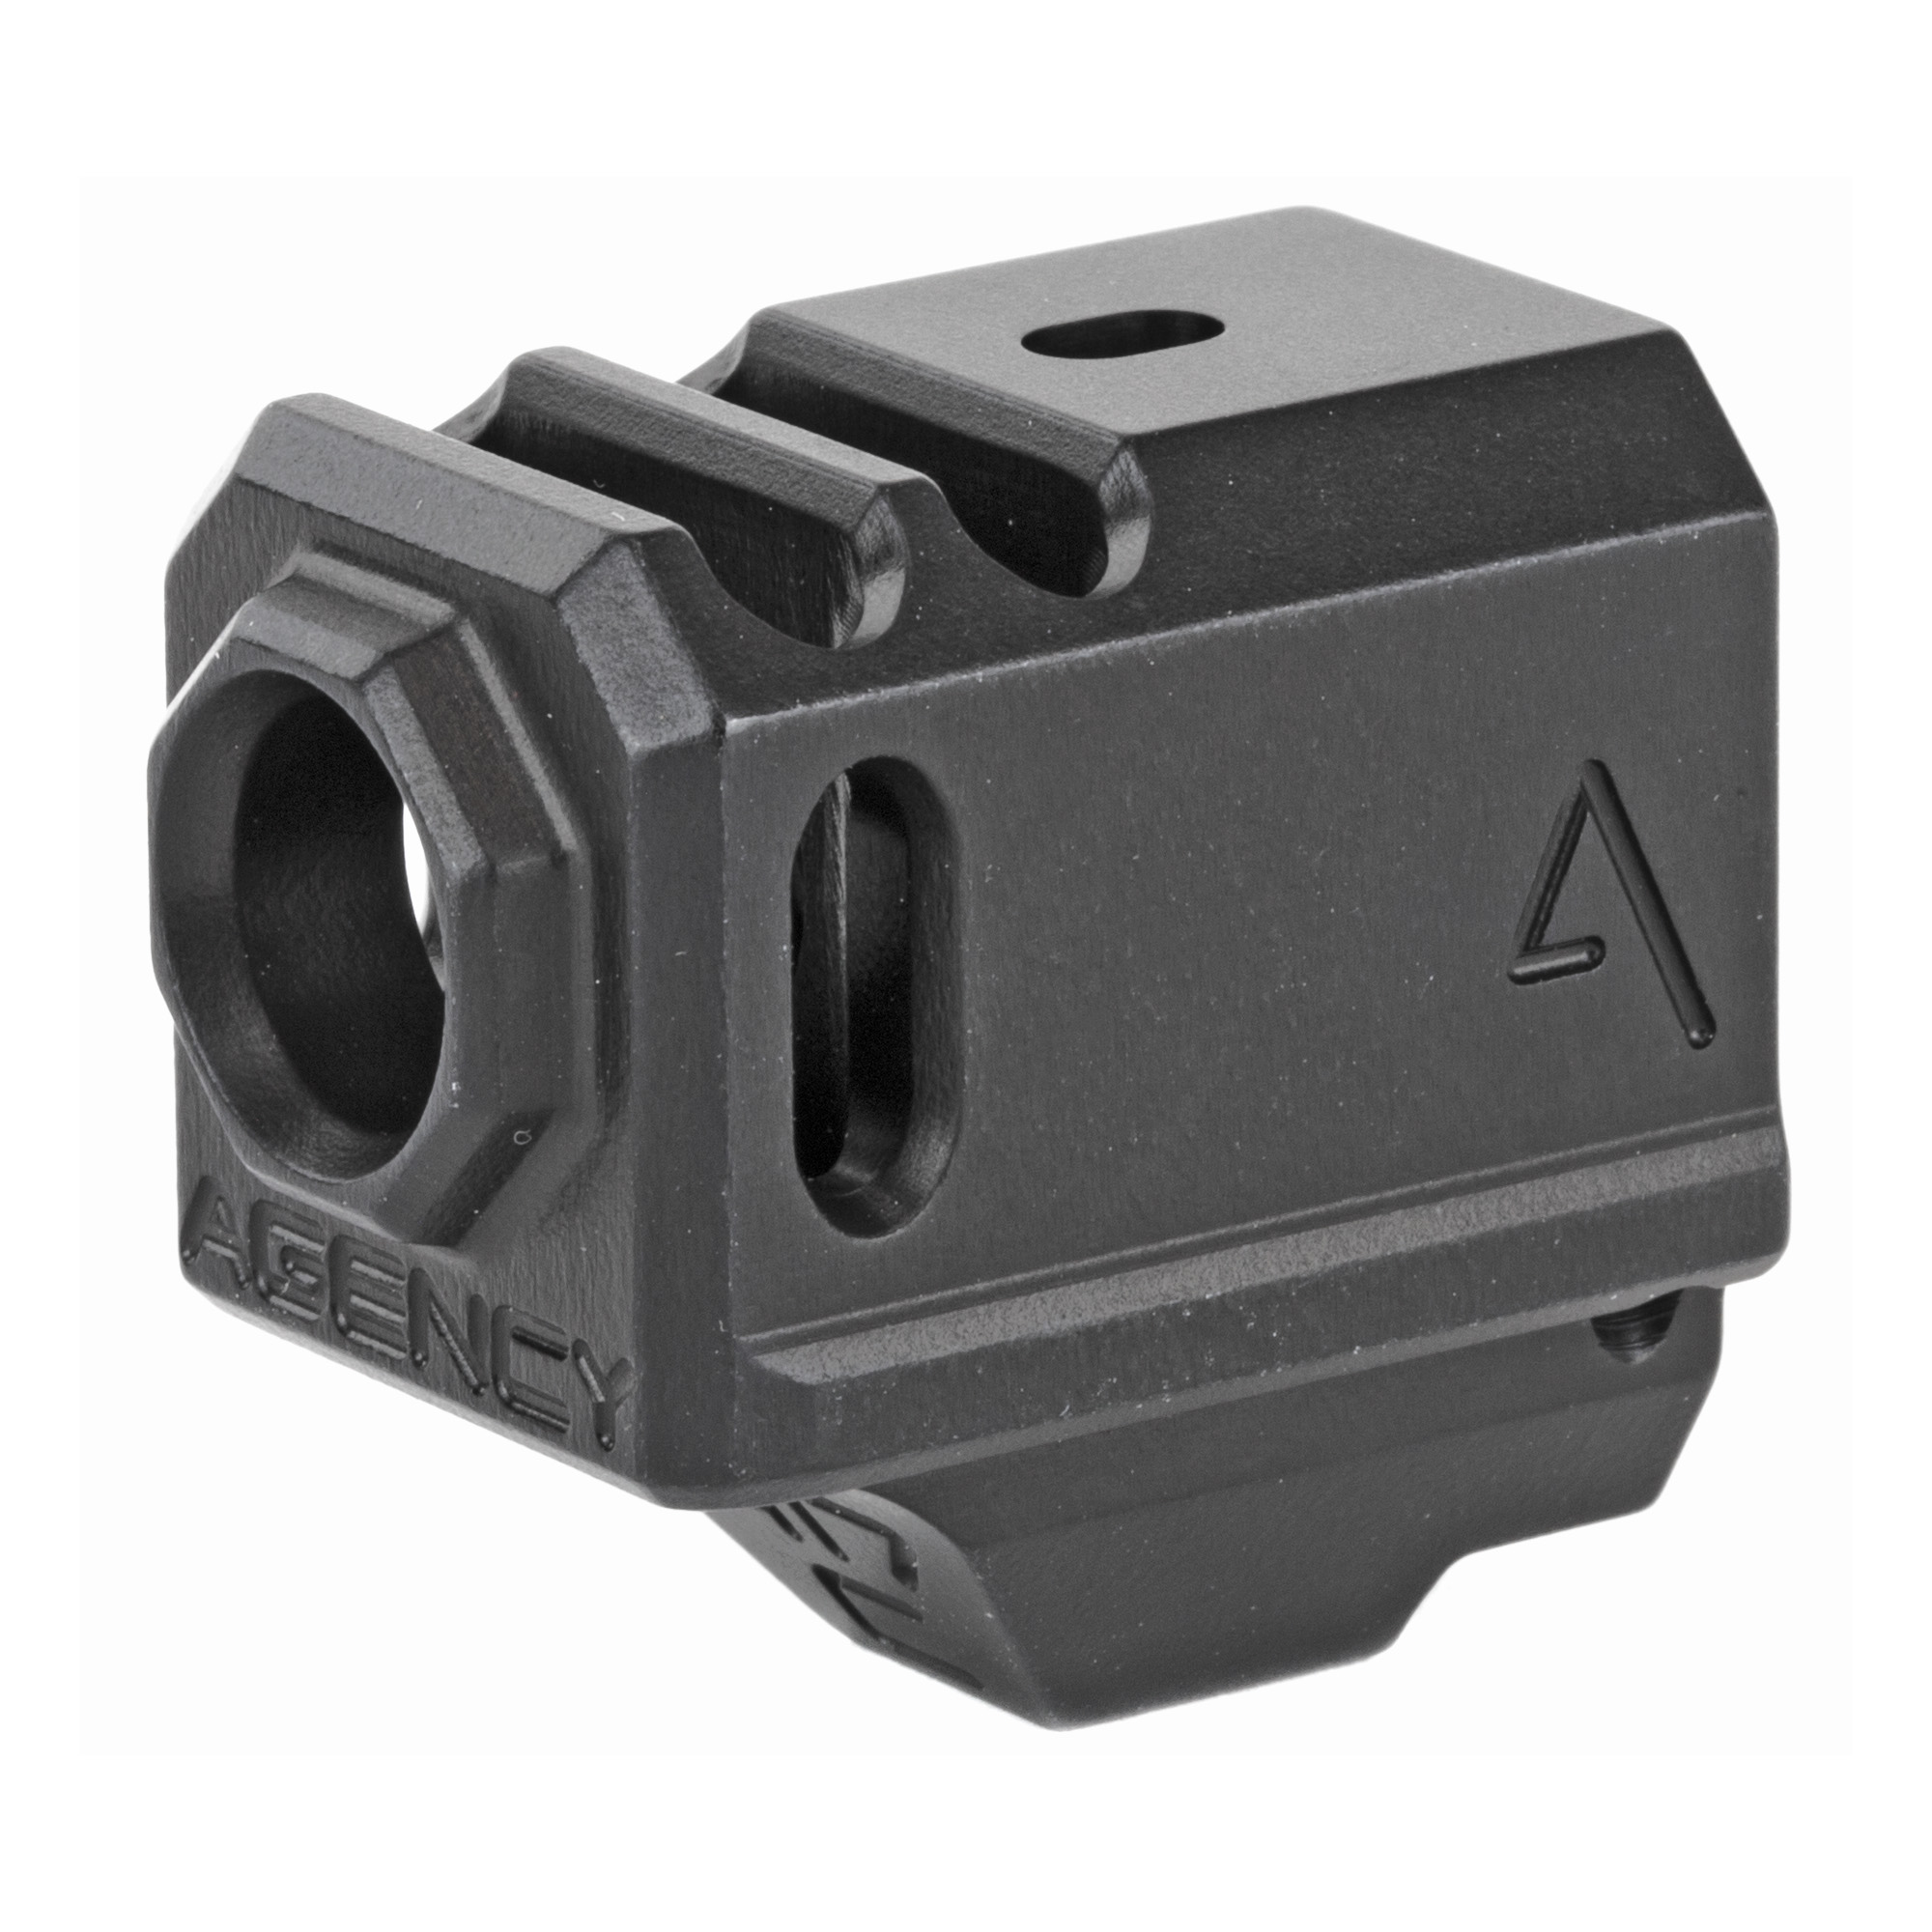 """The Agency Arms 417C Compensator is threaded with the standard 1/2x28 thread pitch. It features a 2 chamber design (2 vertical ports and 2 side venting ports. It is designed to utilize the OEM recoil spring assembly and it also features a front sight hole"""" allowing you to transfer your existing front sight from your slide to the comp. The 417C is specifically designed for the Glock(R) 43"""